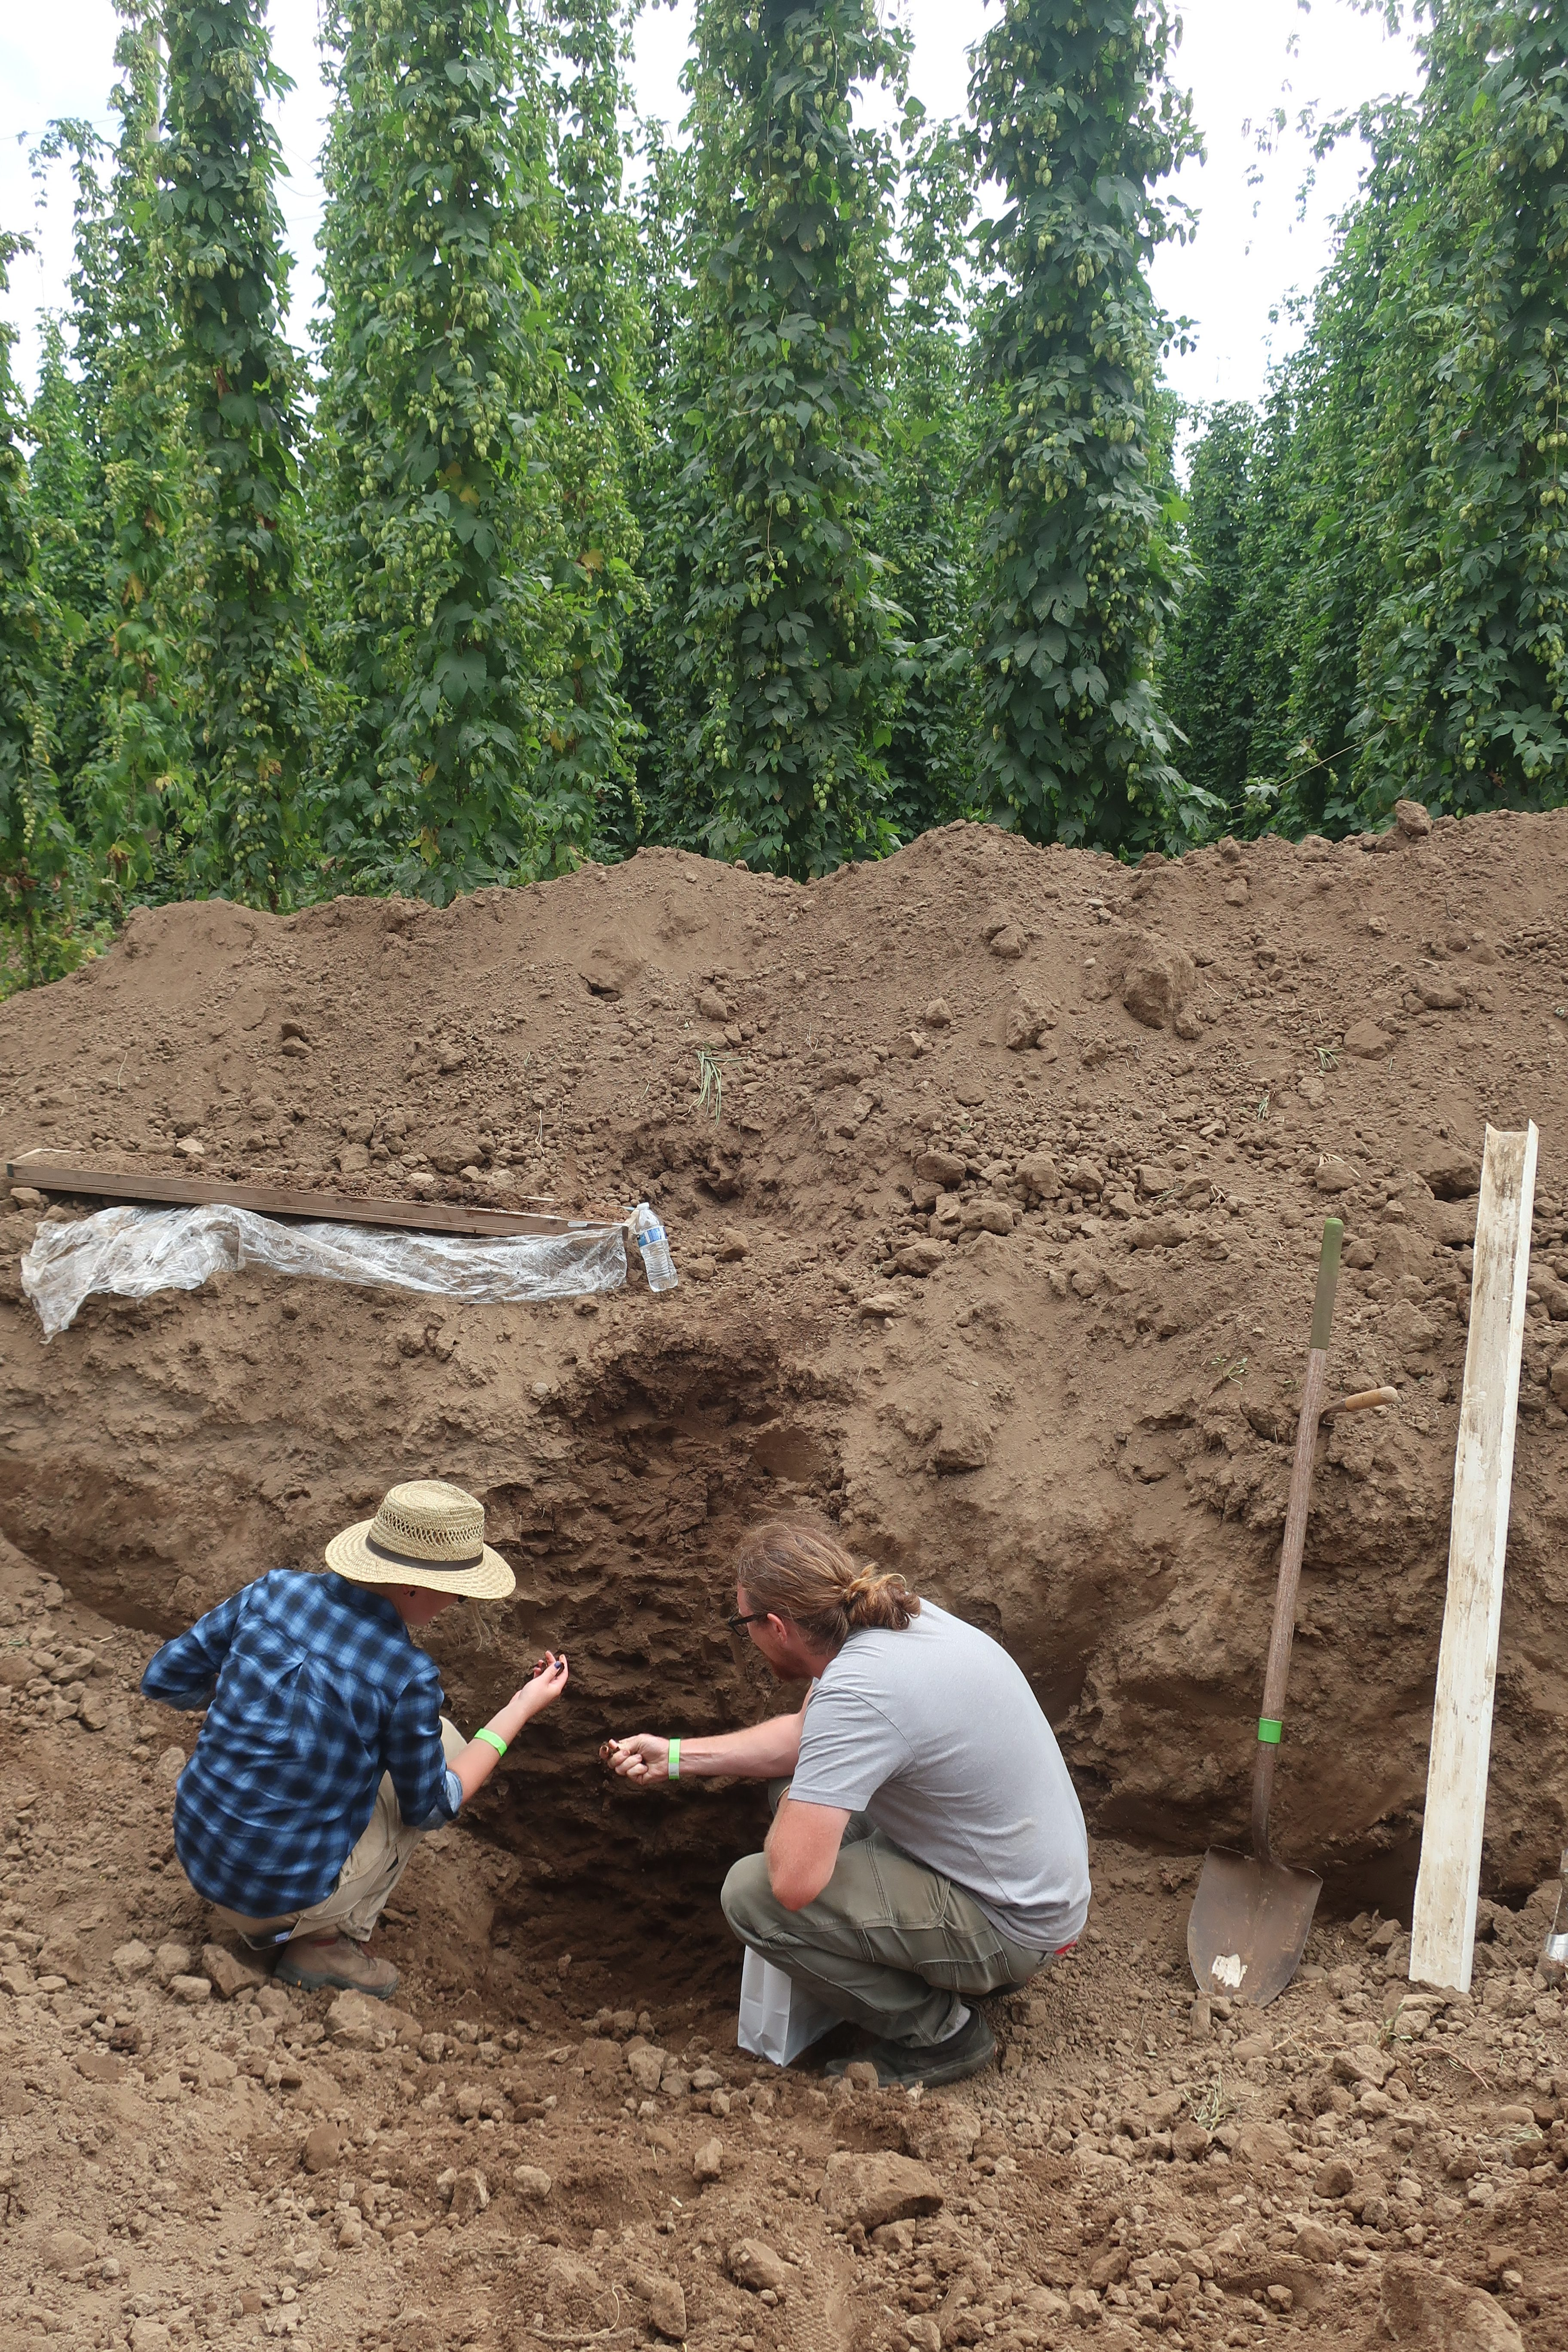 Inspecting the soil during the Bine to Beer Hop Terroir symposium at Coleman Agriculture.